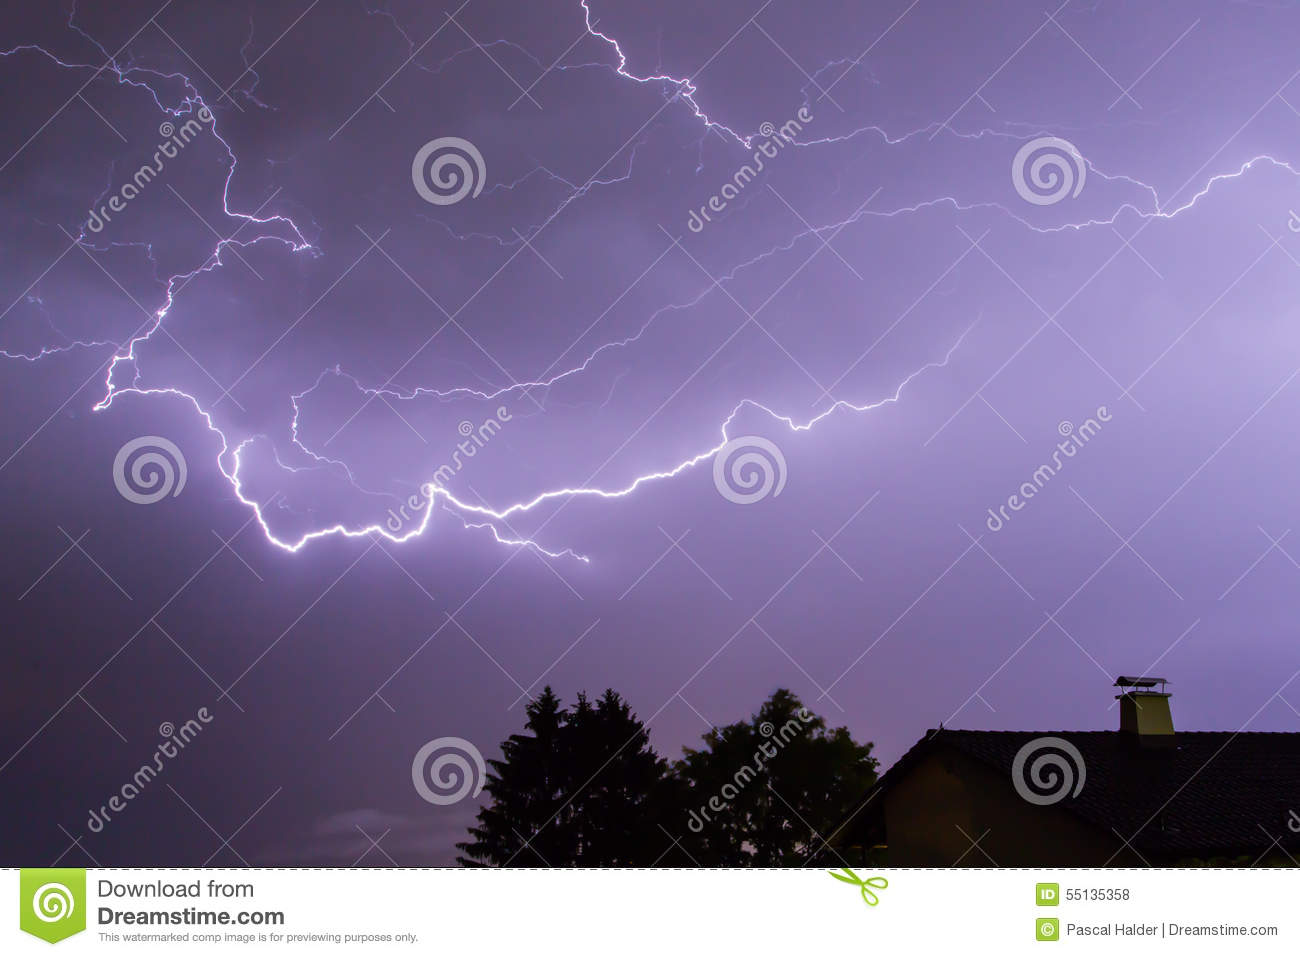 Storm with lightnings, a house and trees